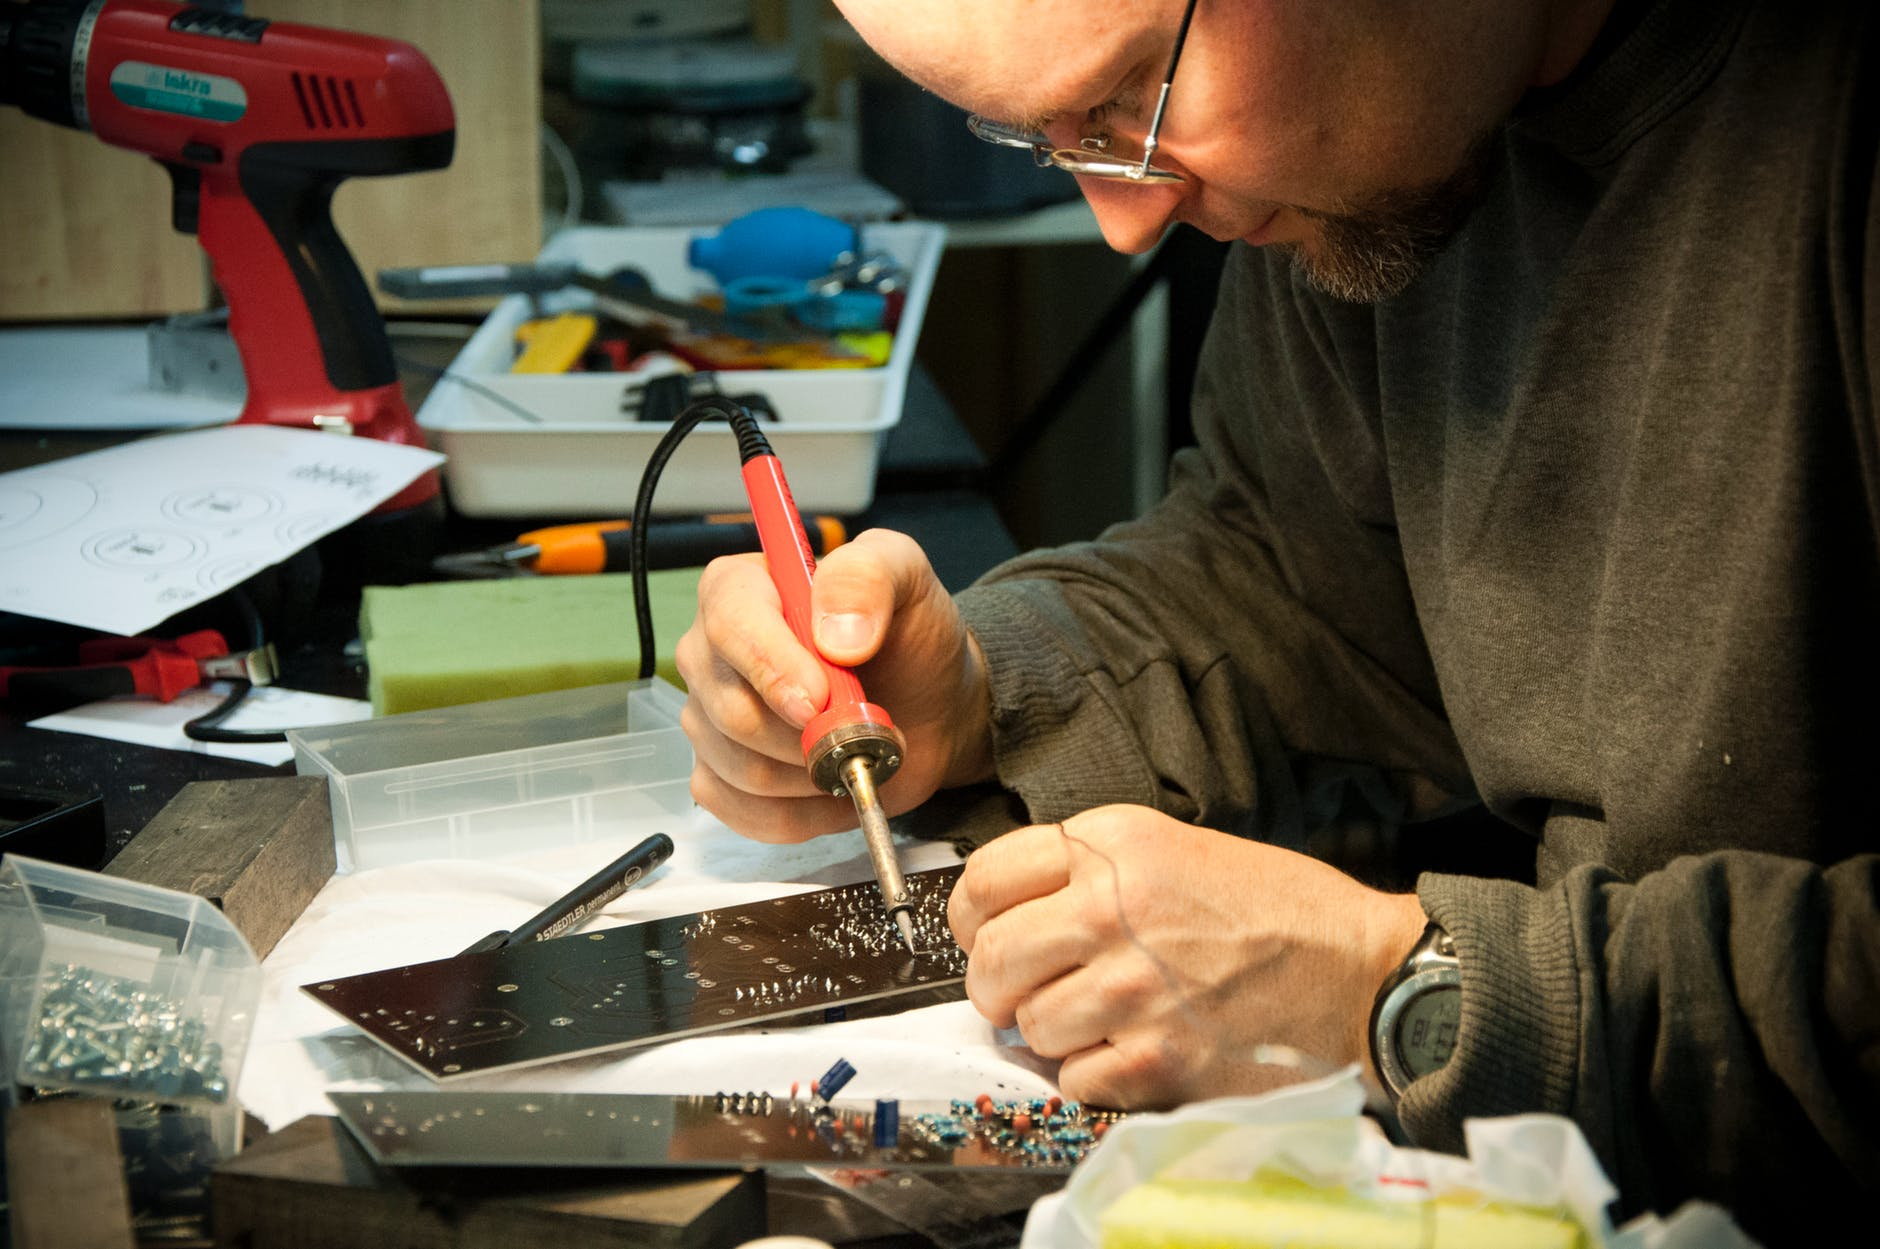 man while using a soldering iron